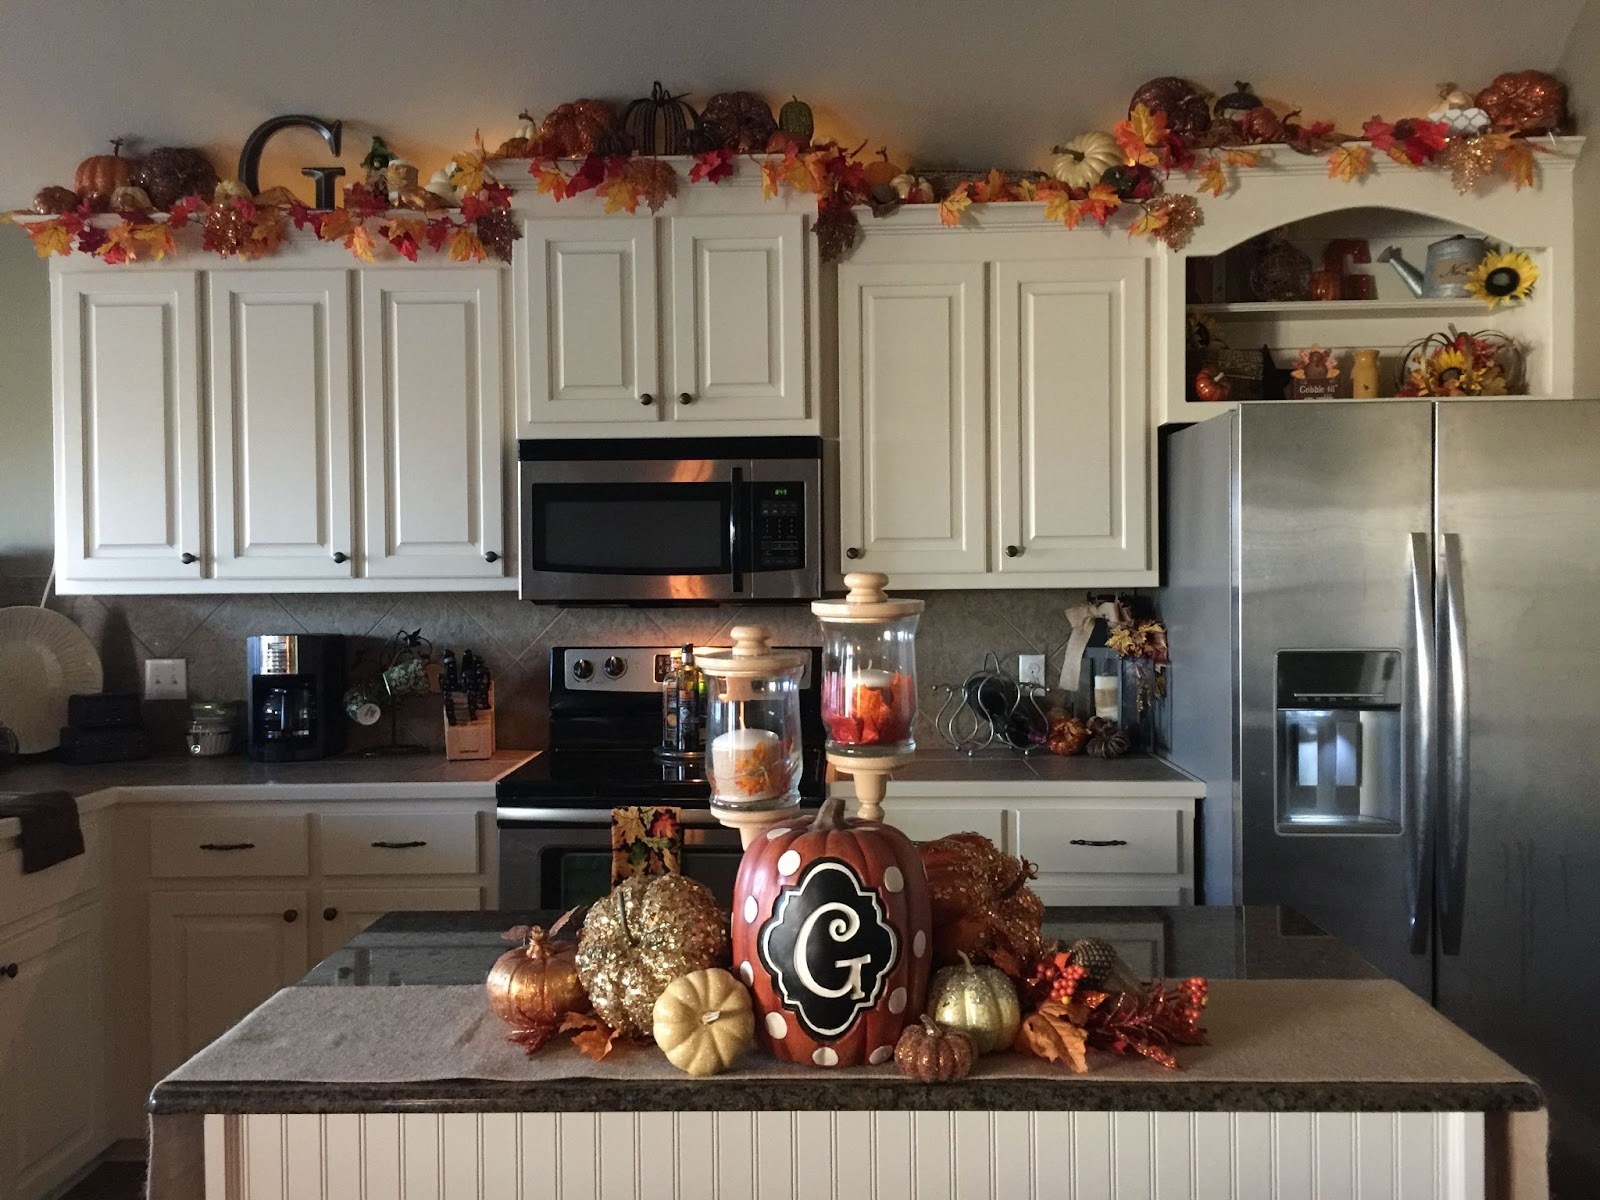 White kitchen with fall decorations.